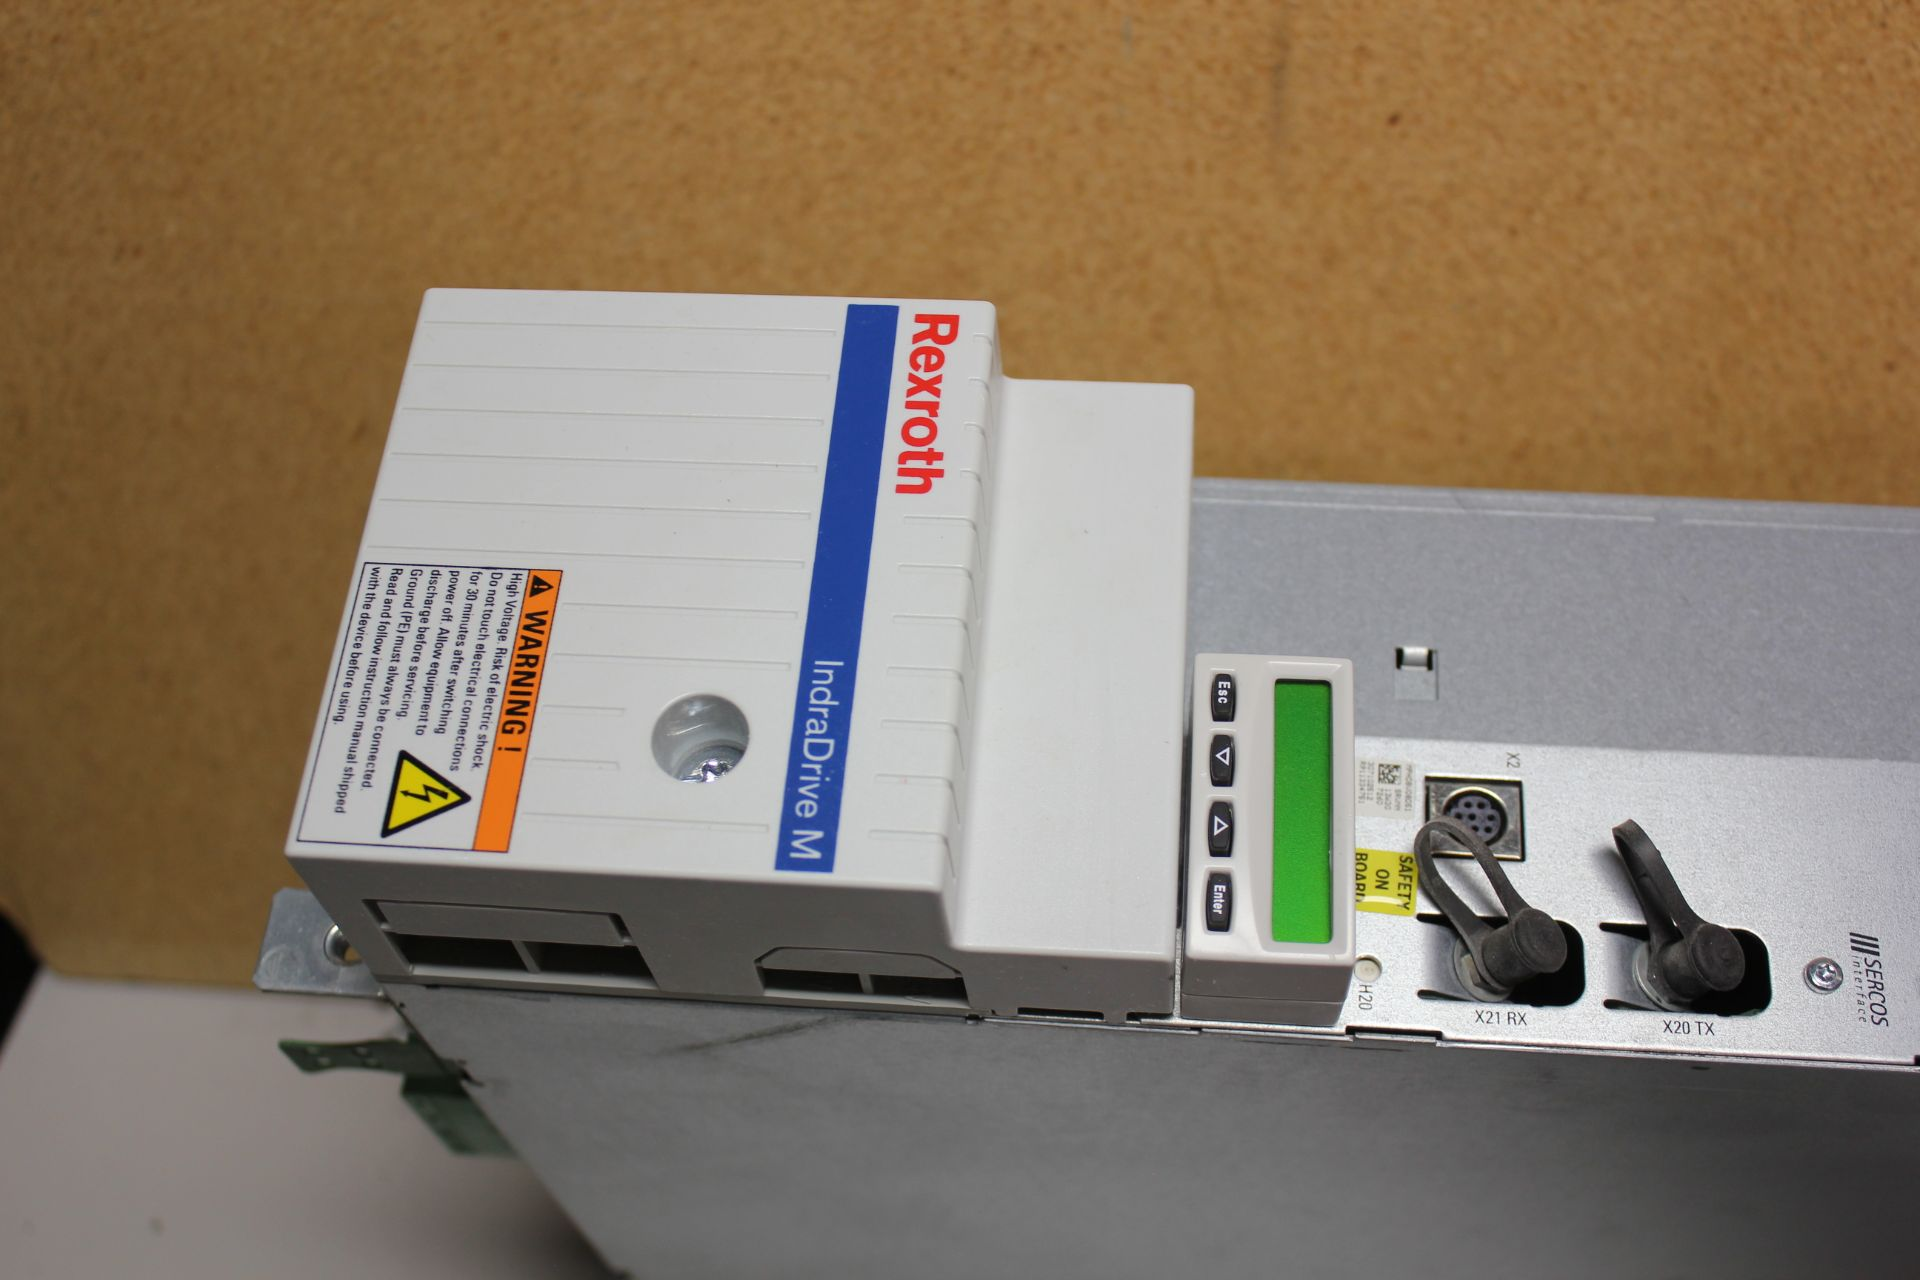 REXROTH INDRADRIVE M SINGLE AXIS INVERTER SERCOS MODULE - Image 2 of 7